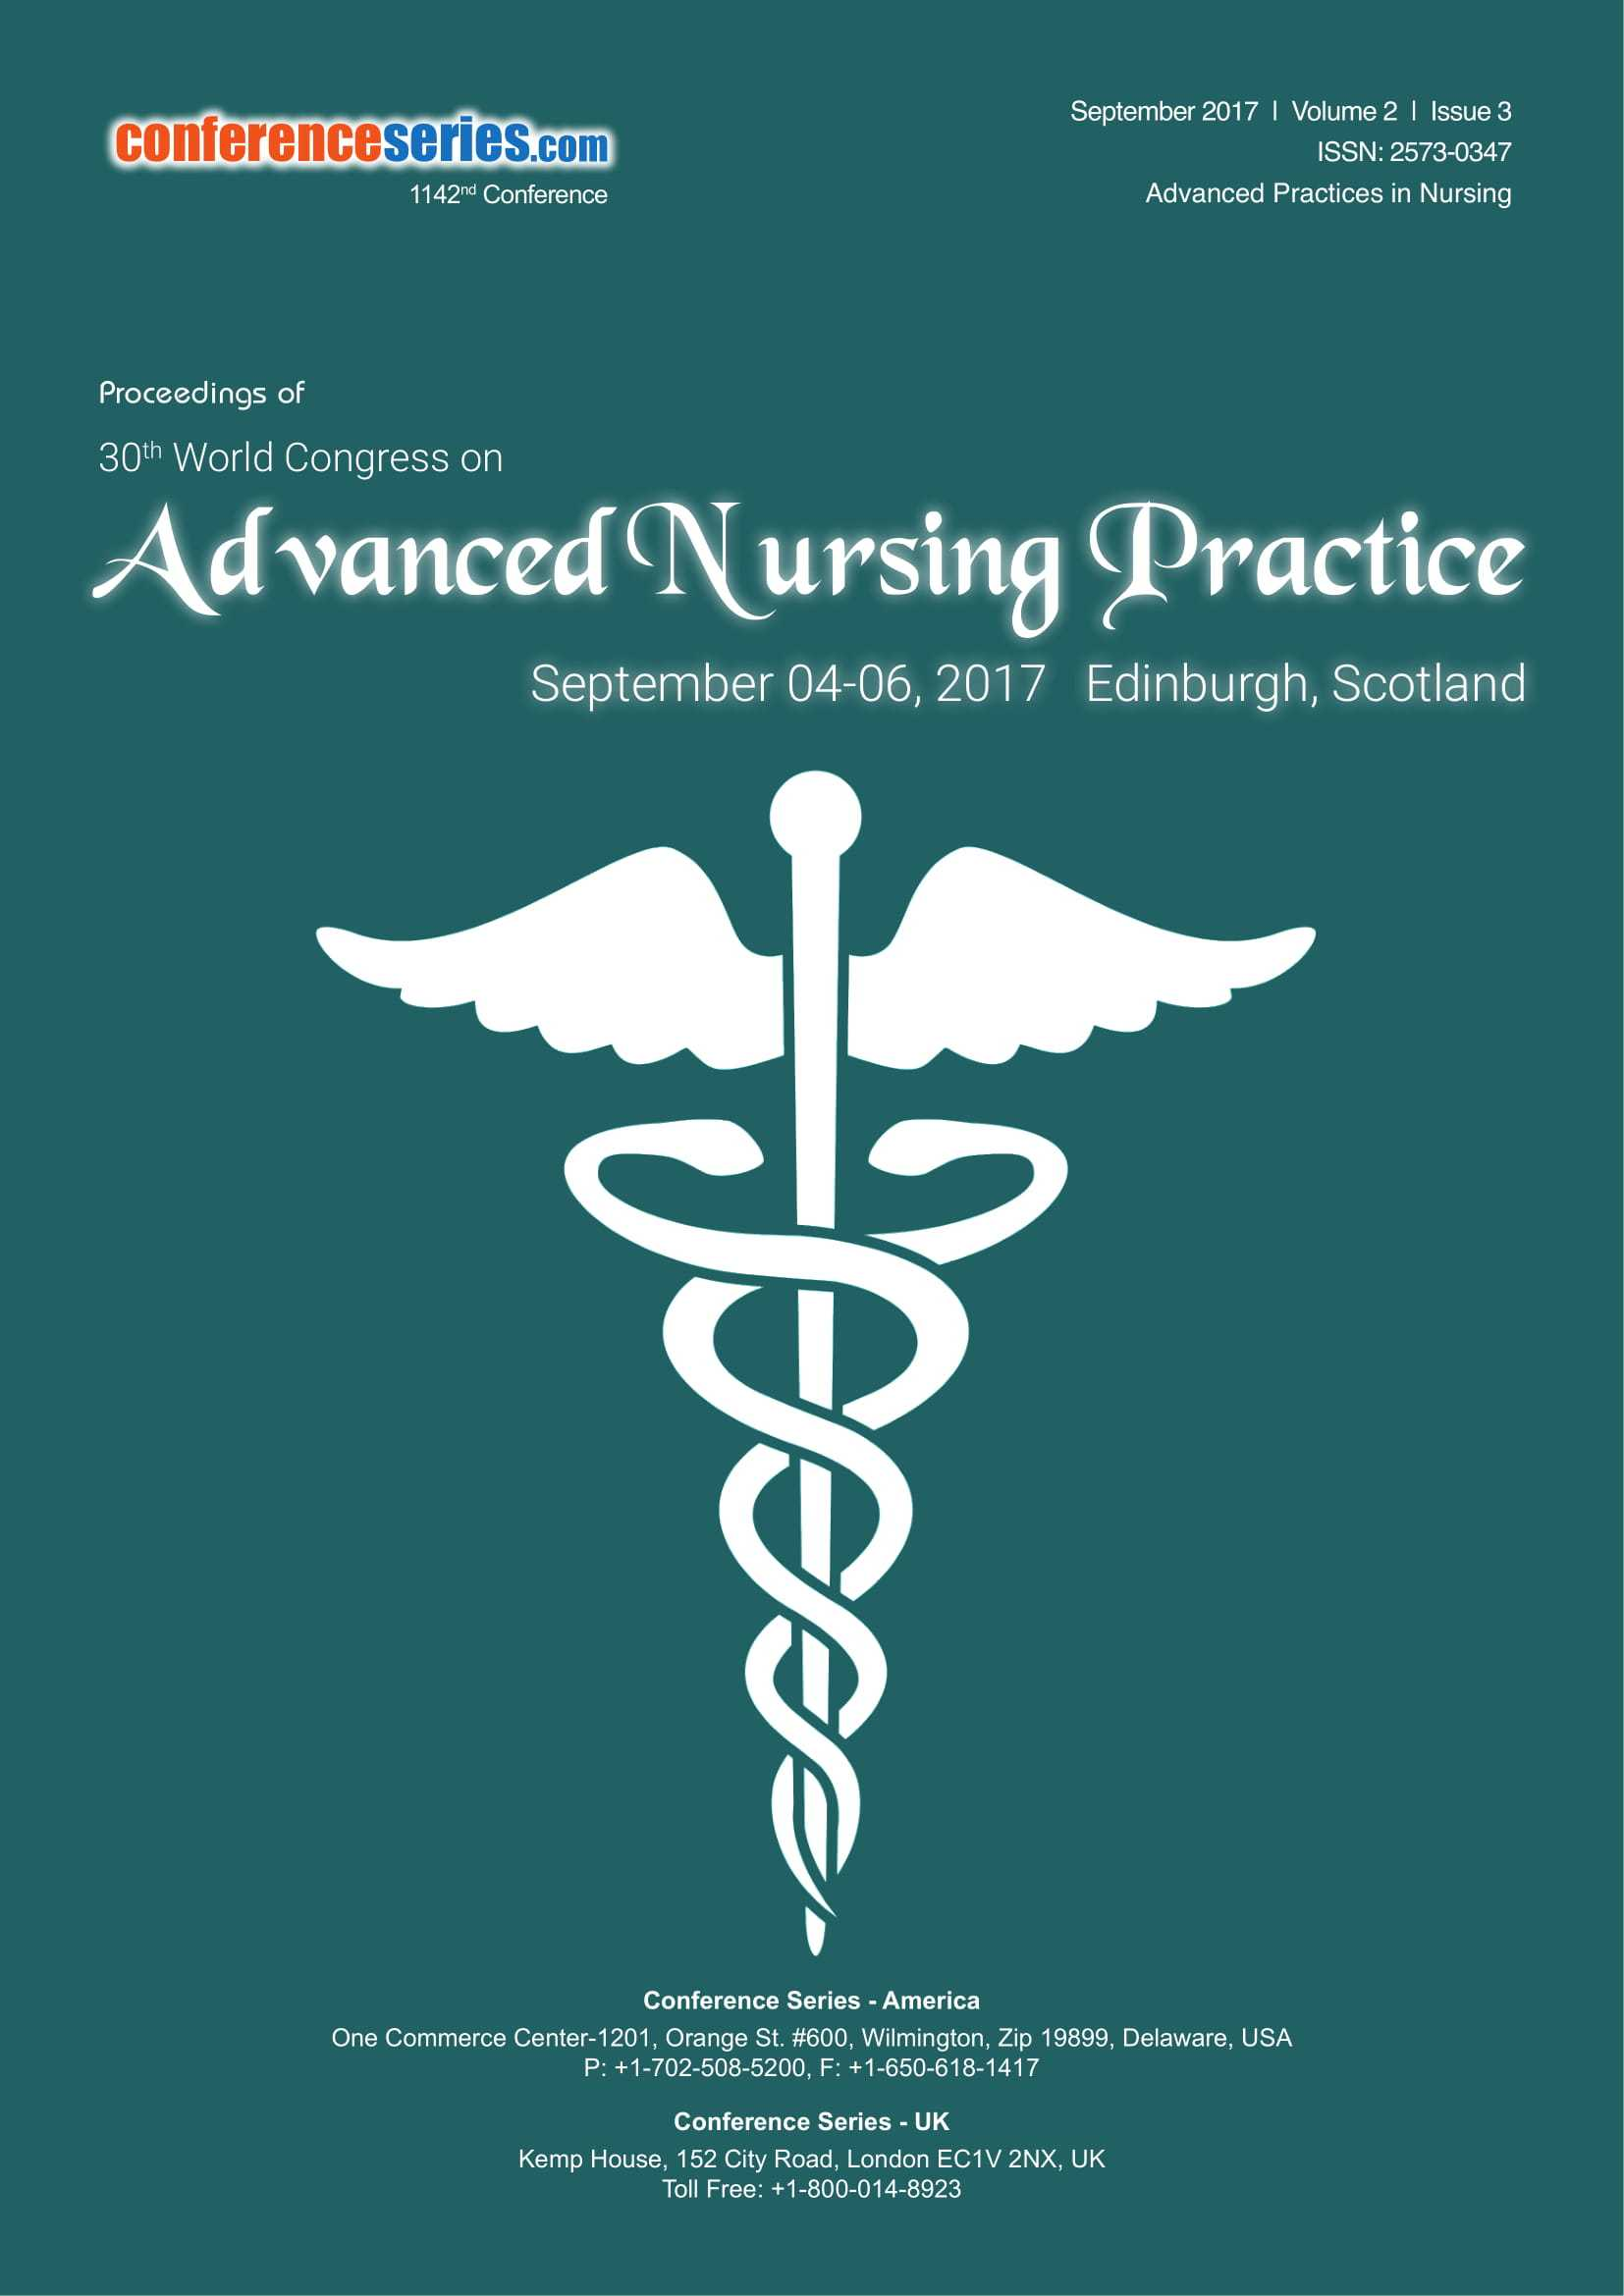 Nursing Practice 2017 Proceedings